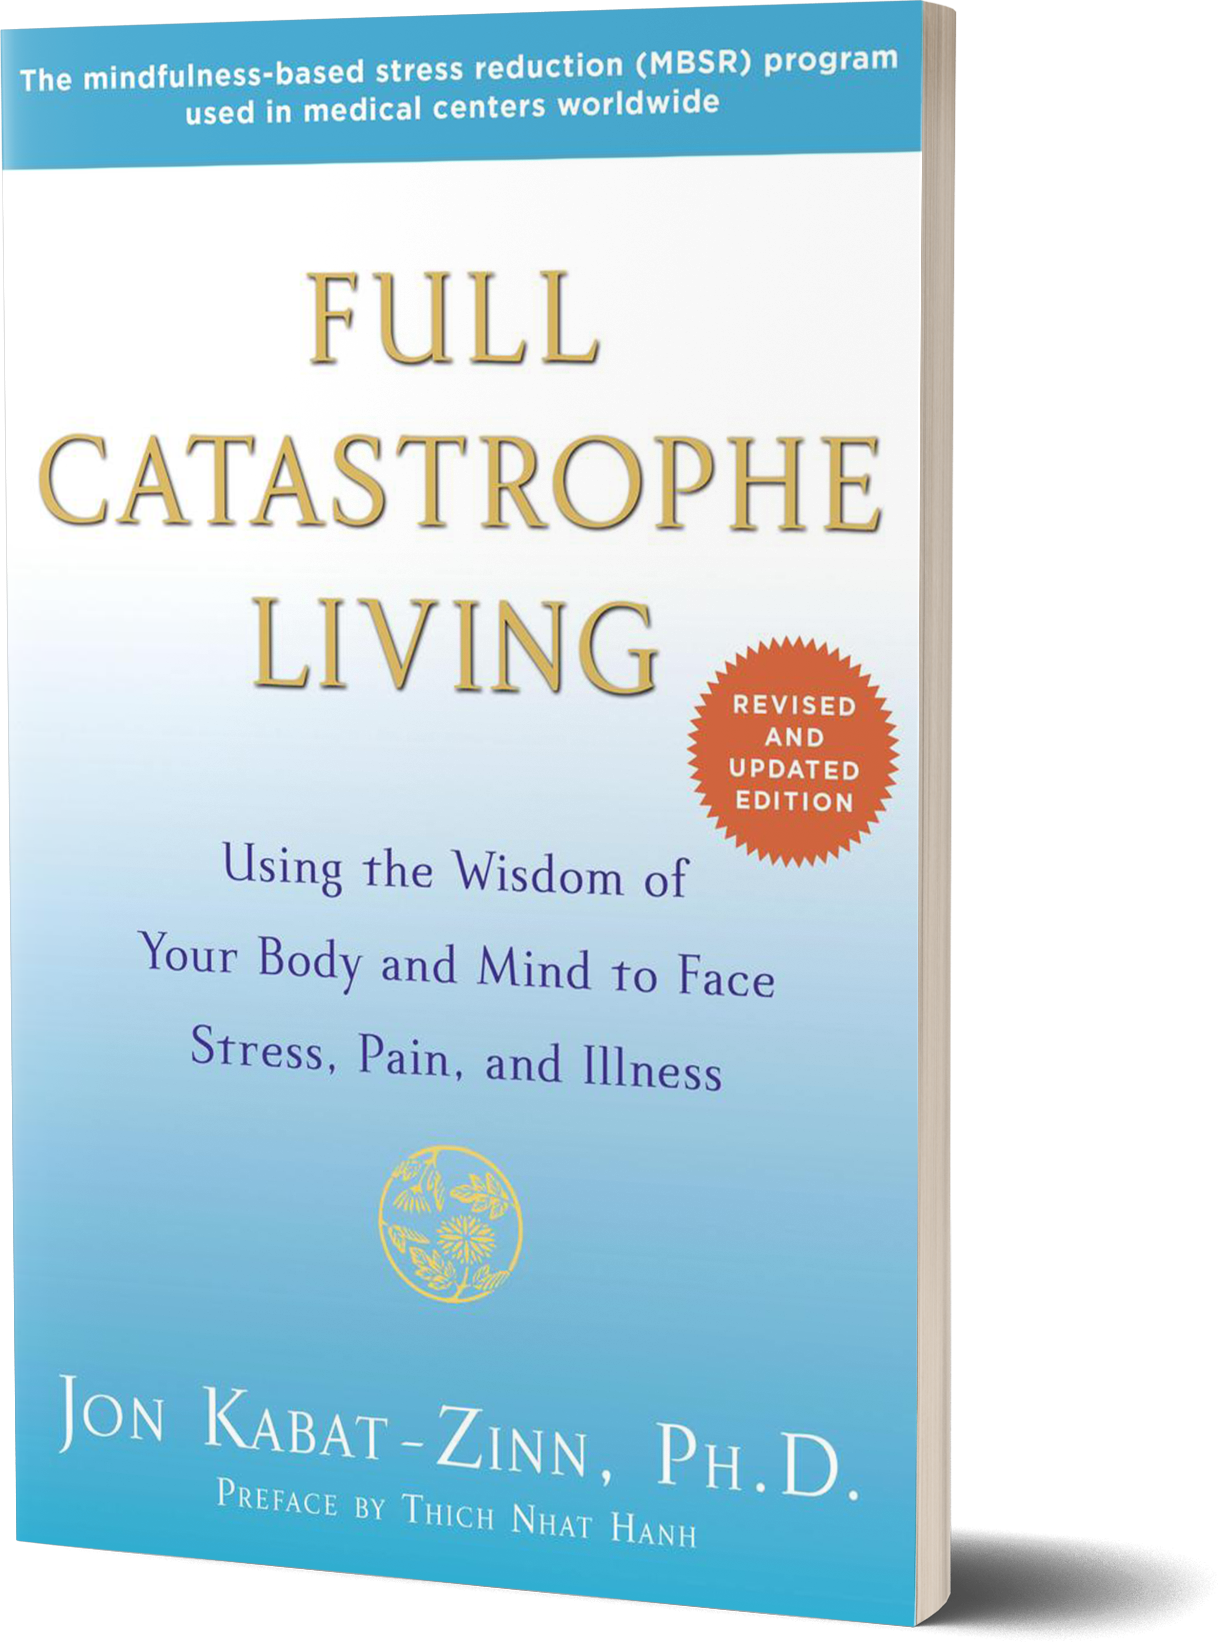 Full Catastrophe Living- Using the Wisdom of Your Body and Mind to Face Stress, Pain, and Illness by Jon Kabat-Zinn.png